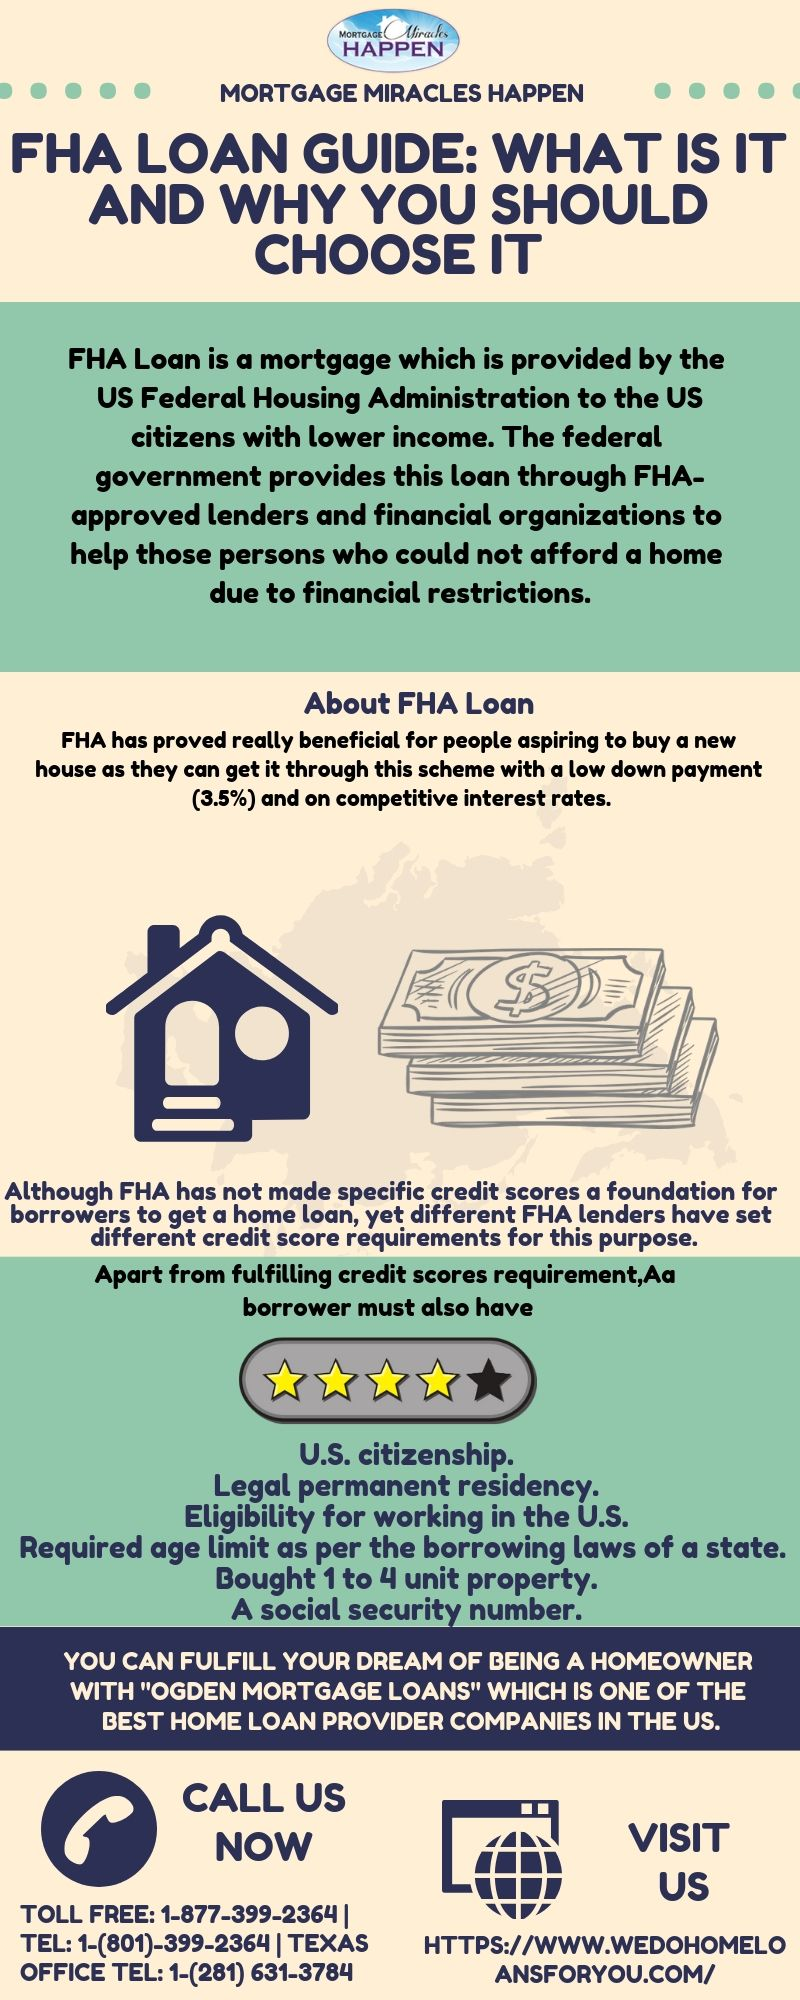 Fha Has Made Many People Eligible For A Home Loan Through Easy Terms And Favorable Guidelines It Has Supported Even Those Persons W Fha Loans Fha Mortgage Fha